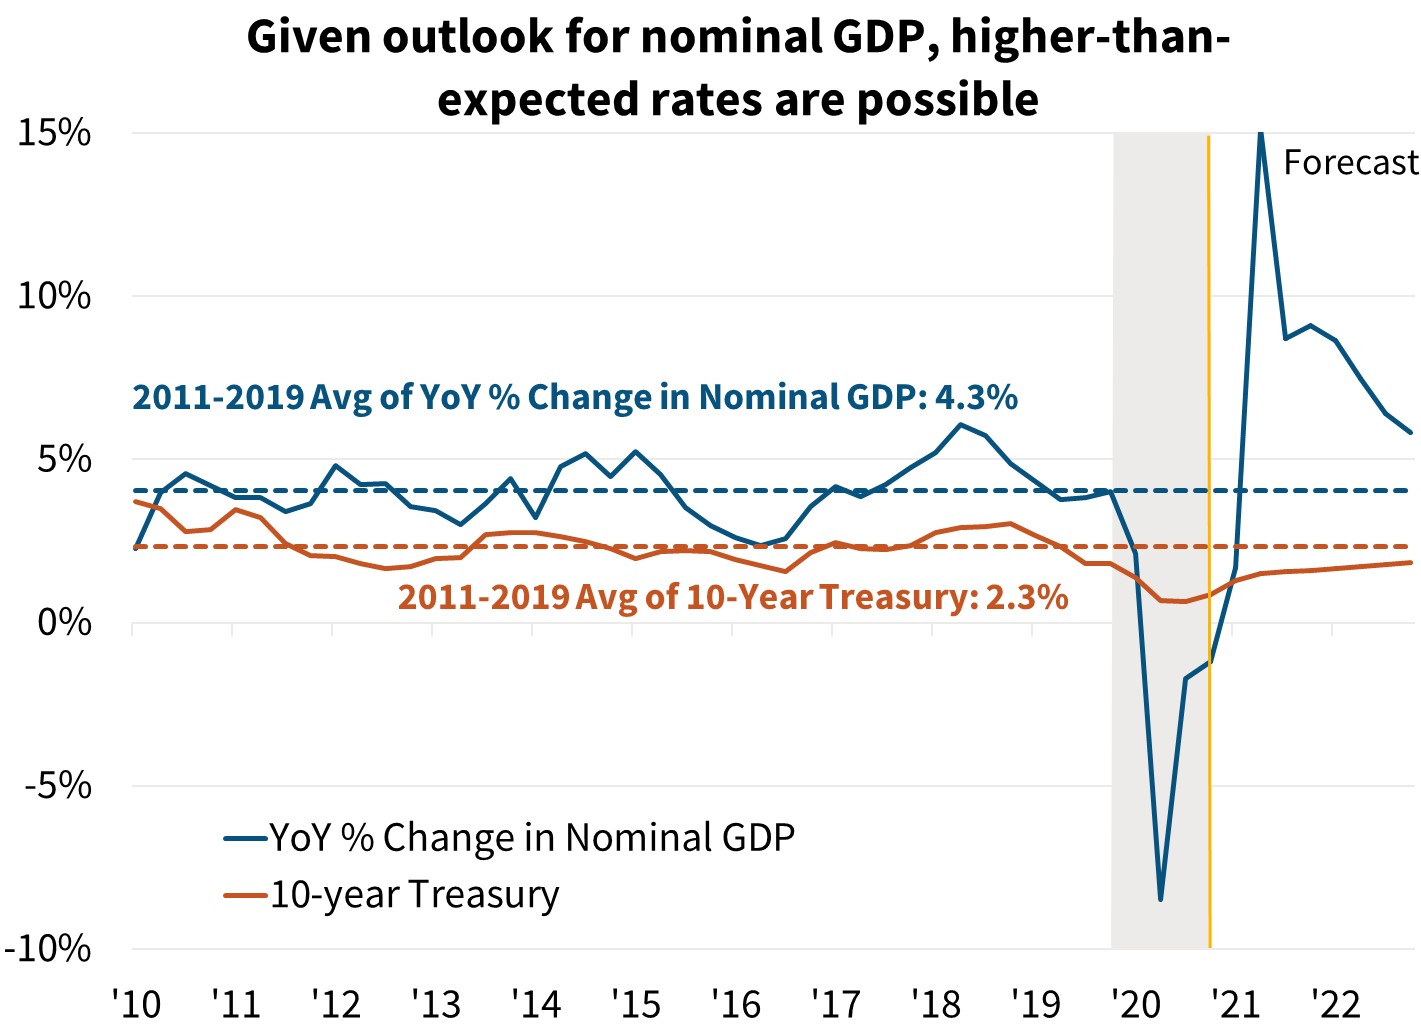 Given outlook for nominal GDP higher-than-expected rates are possible